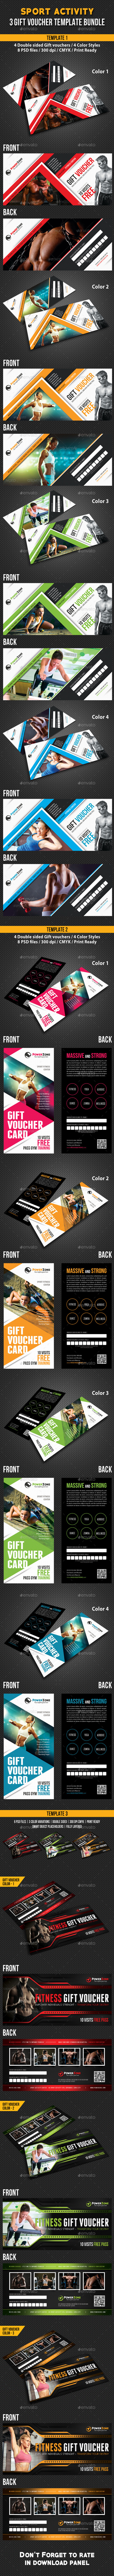 3 in 1 Sport Activity Gift Voucher Bundle 03 - Cards & Invites Print Templates